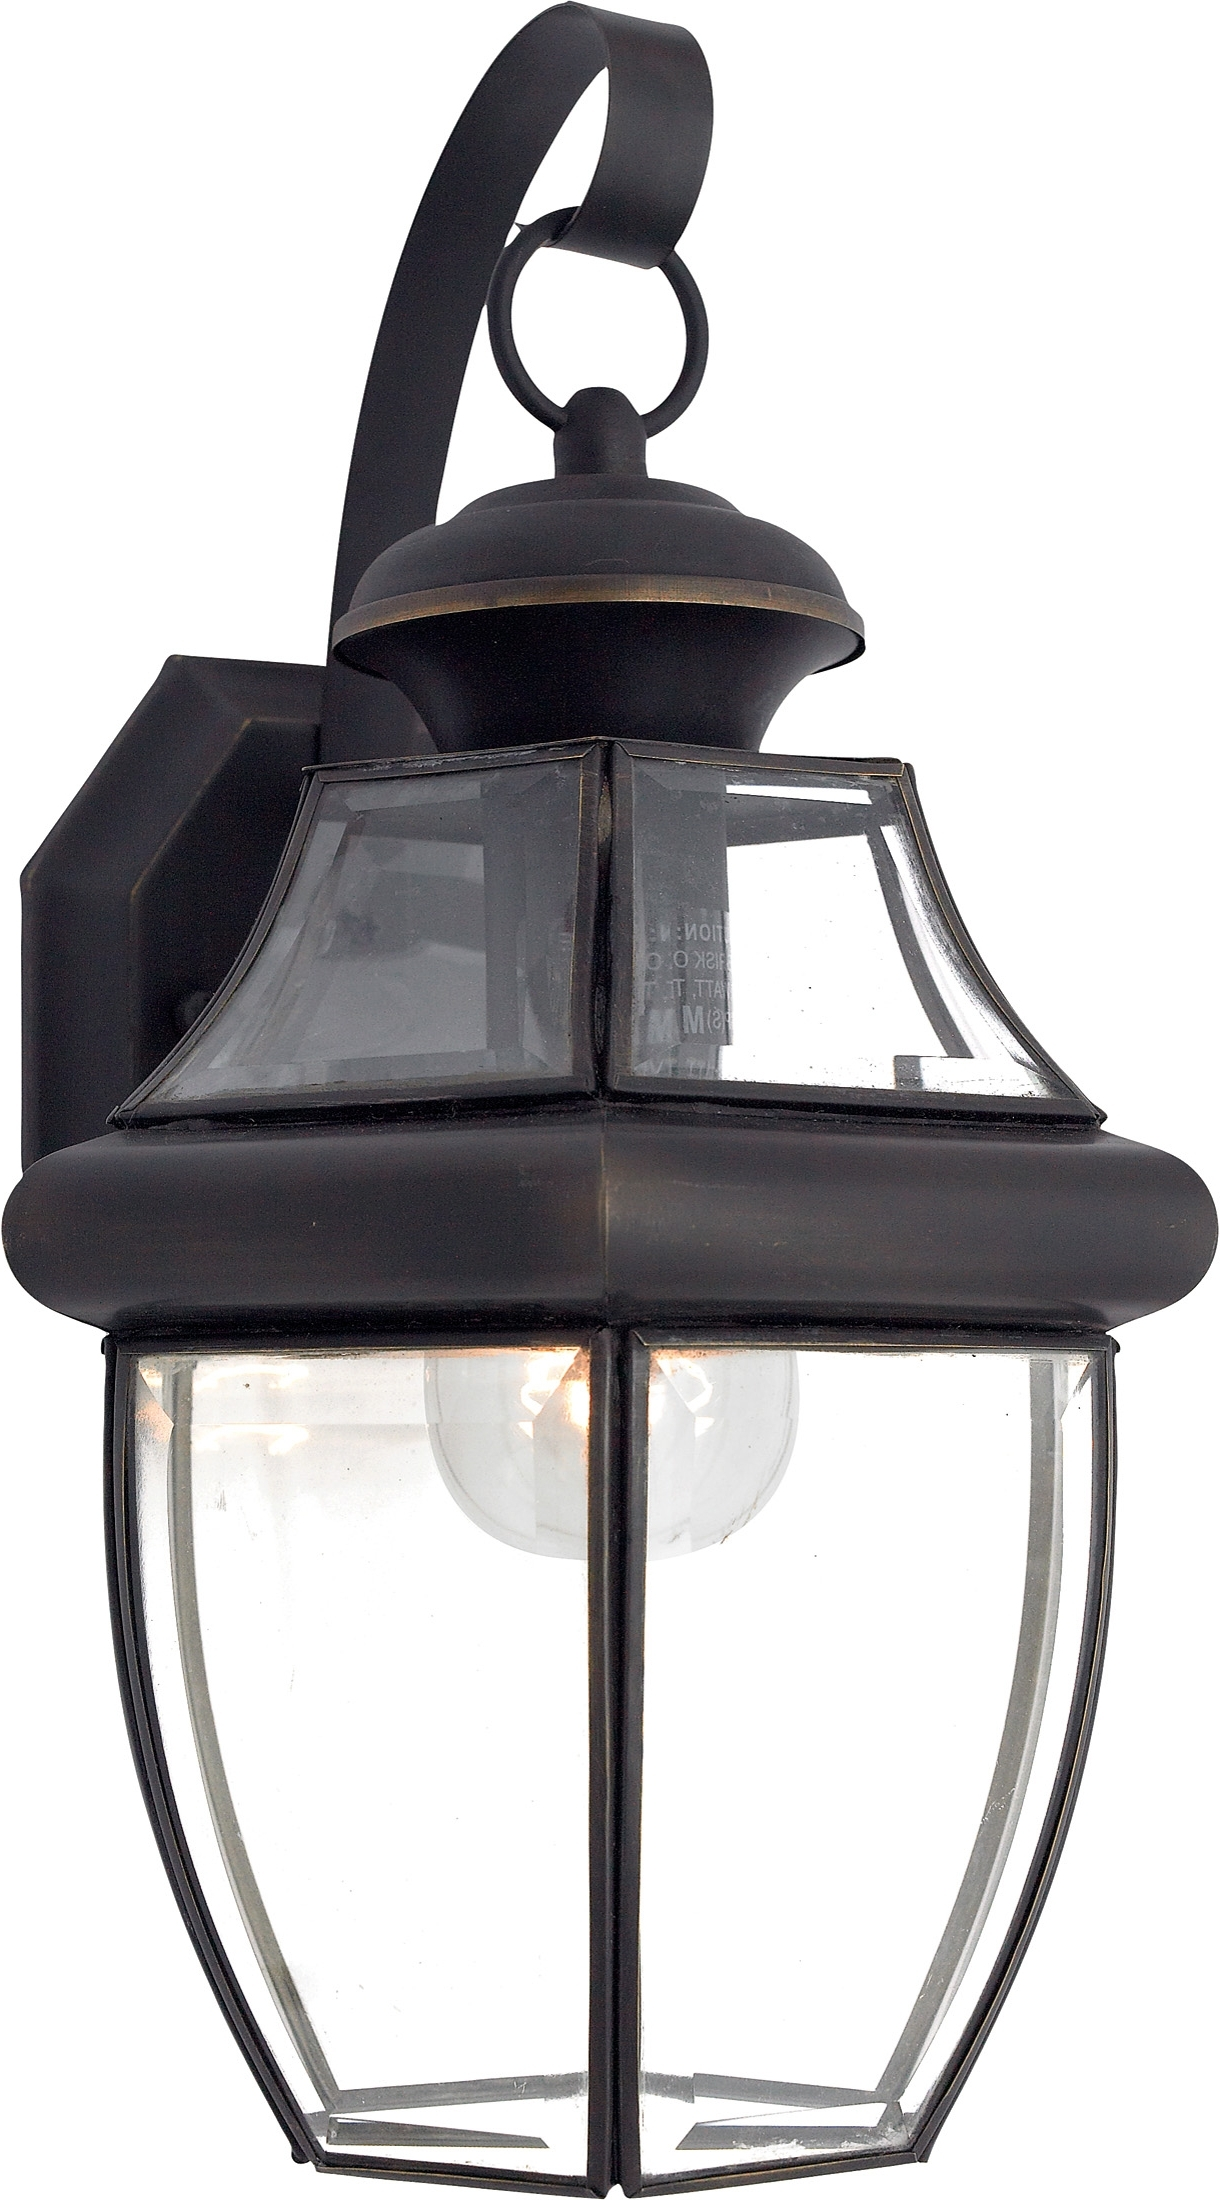 Traditional Outdoor Ceiling Lights With Regard To Most Recently Released Home Decor + Home Lighting Blog » Blog Archive » Quoizel Lighting (View 16 of 20)